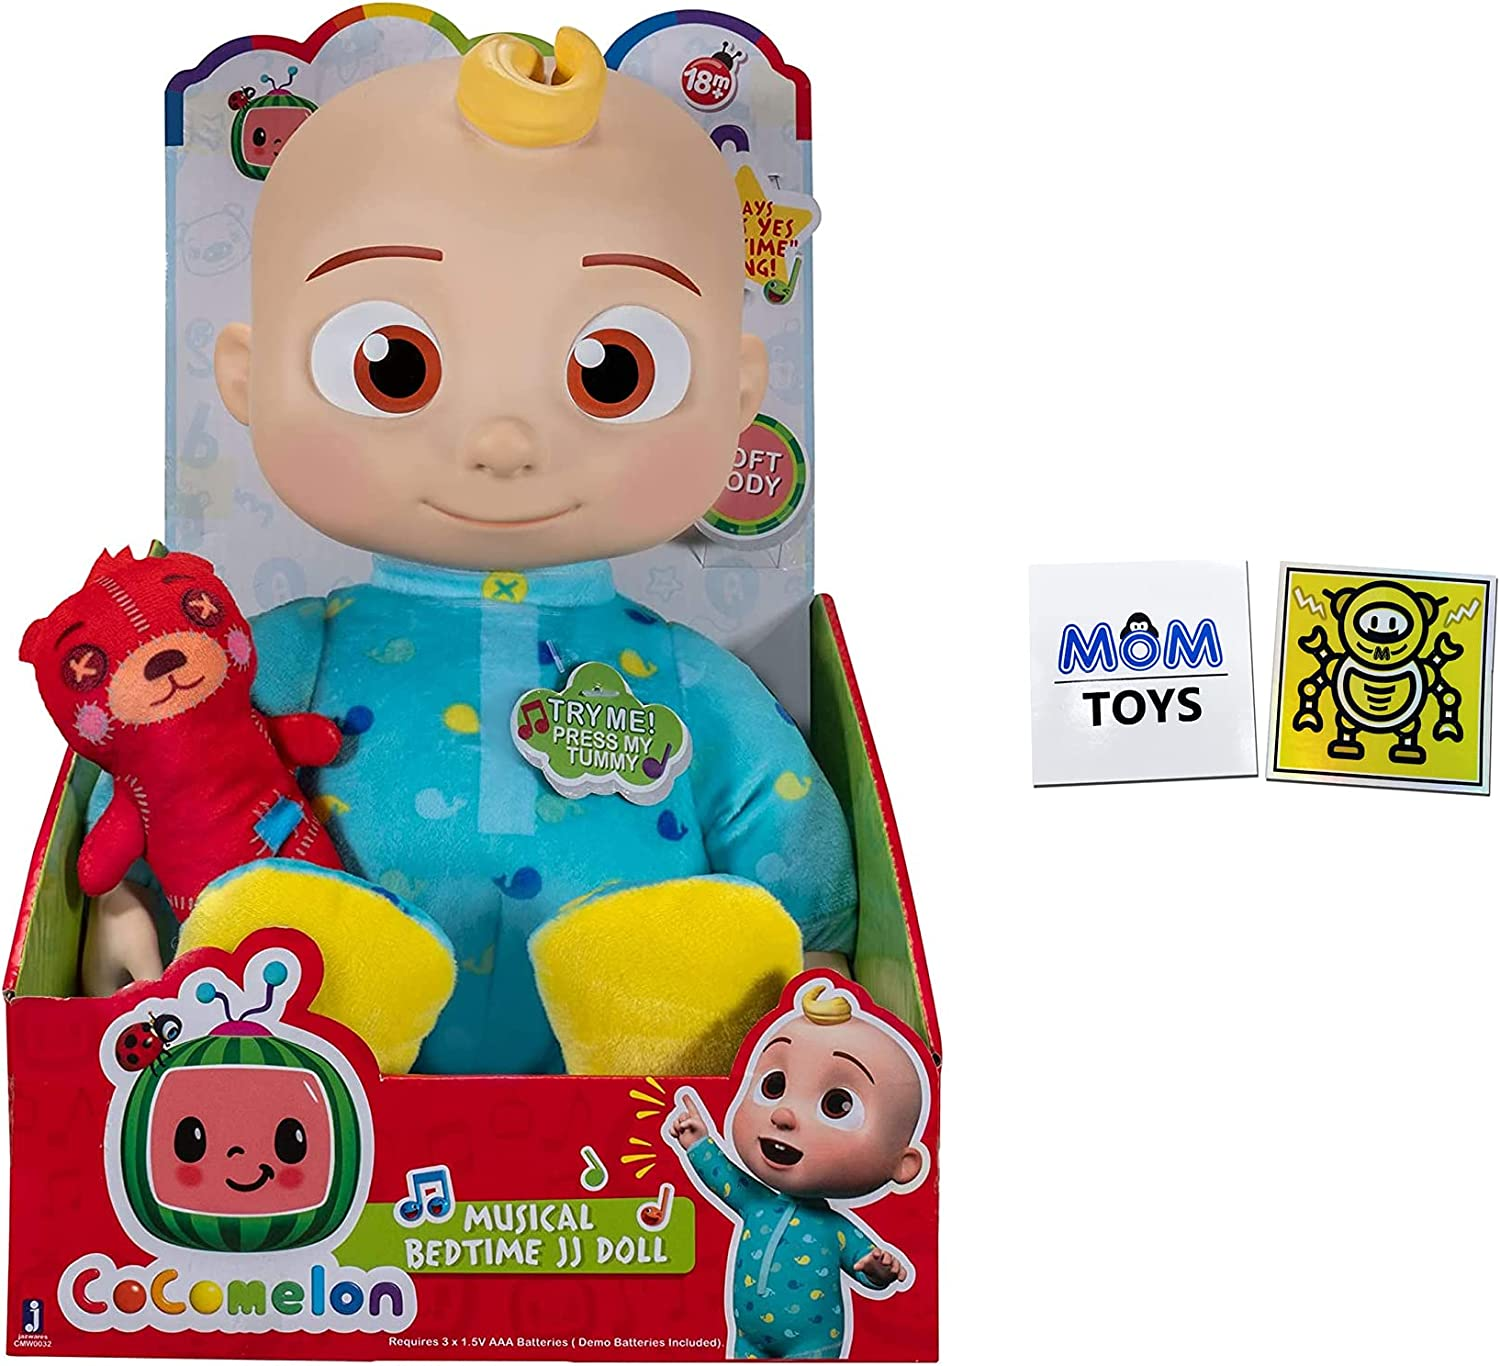 Cocomelon Musical Bedtime JJ Doll - The Toy in Package